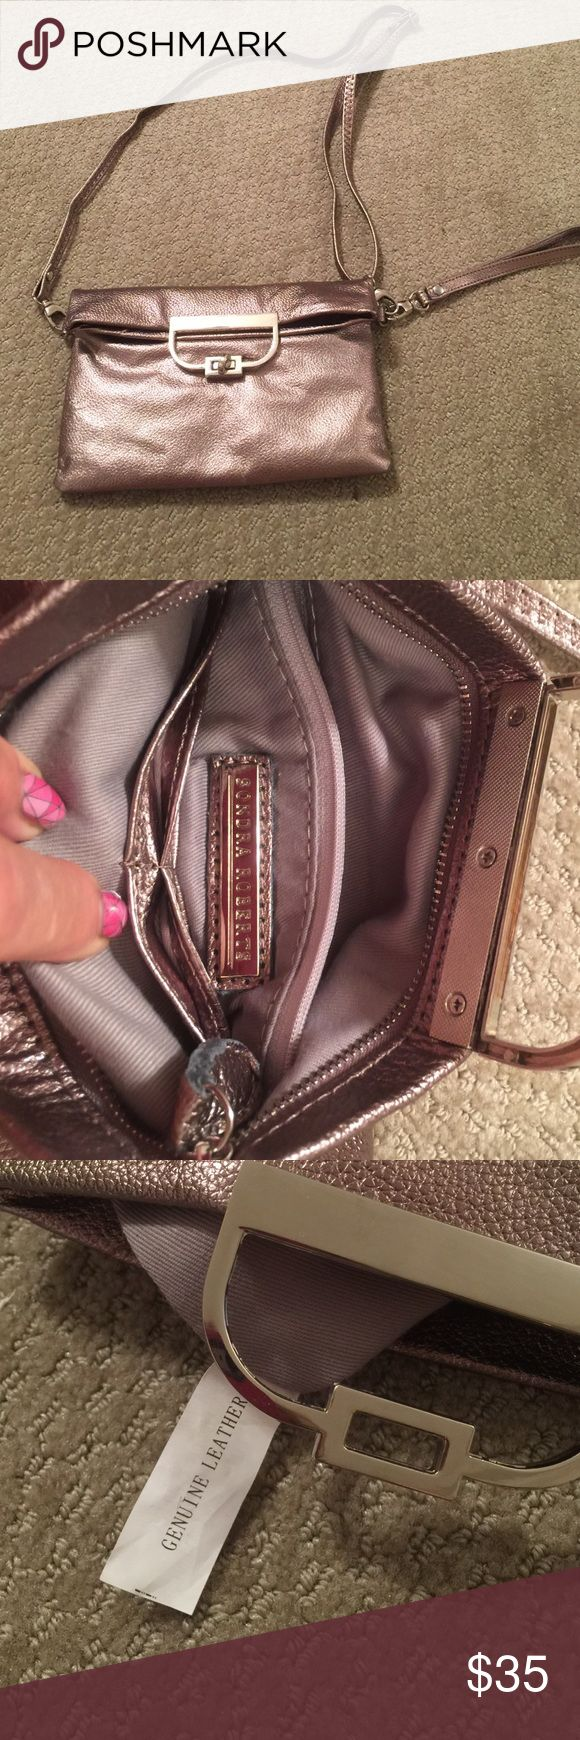 Small Leather Purse Wristlet This bag is like new because it was never used. It is leather. From a smoke free home and pet free home. It was from Nordstrom. It is more of a copper color. It has slots for credit cards. Sondra Roberts Bags Mini Bags